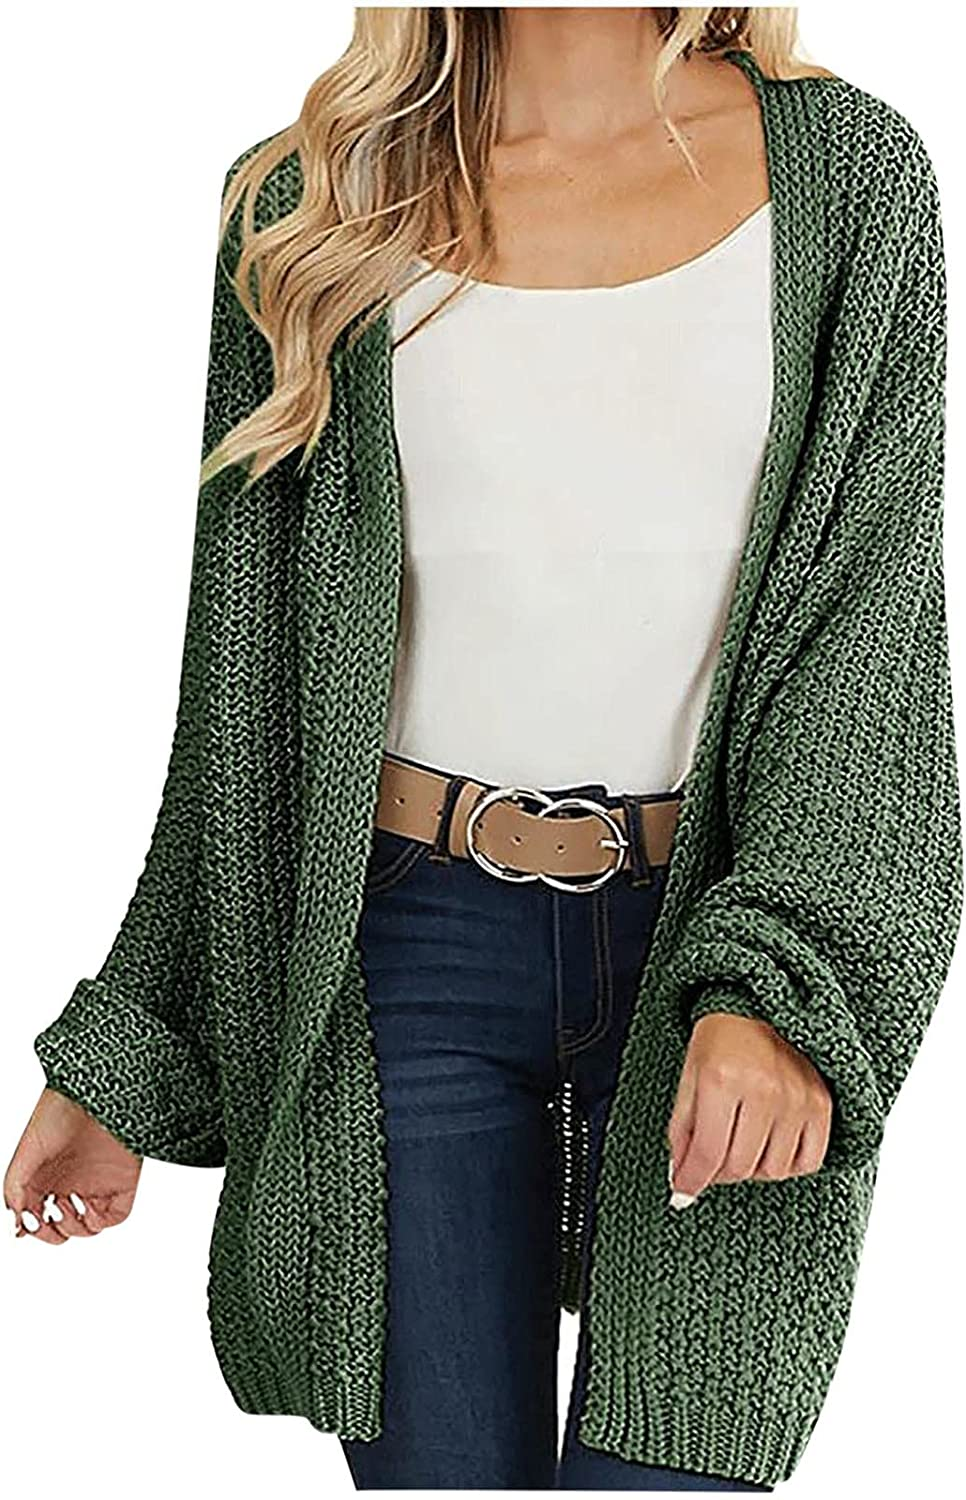 Women's Knitted Long Cardigan Open Front Sweater Outwear Casual Loose Solid Jacket Fashion Long Sleeve Coat Tops